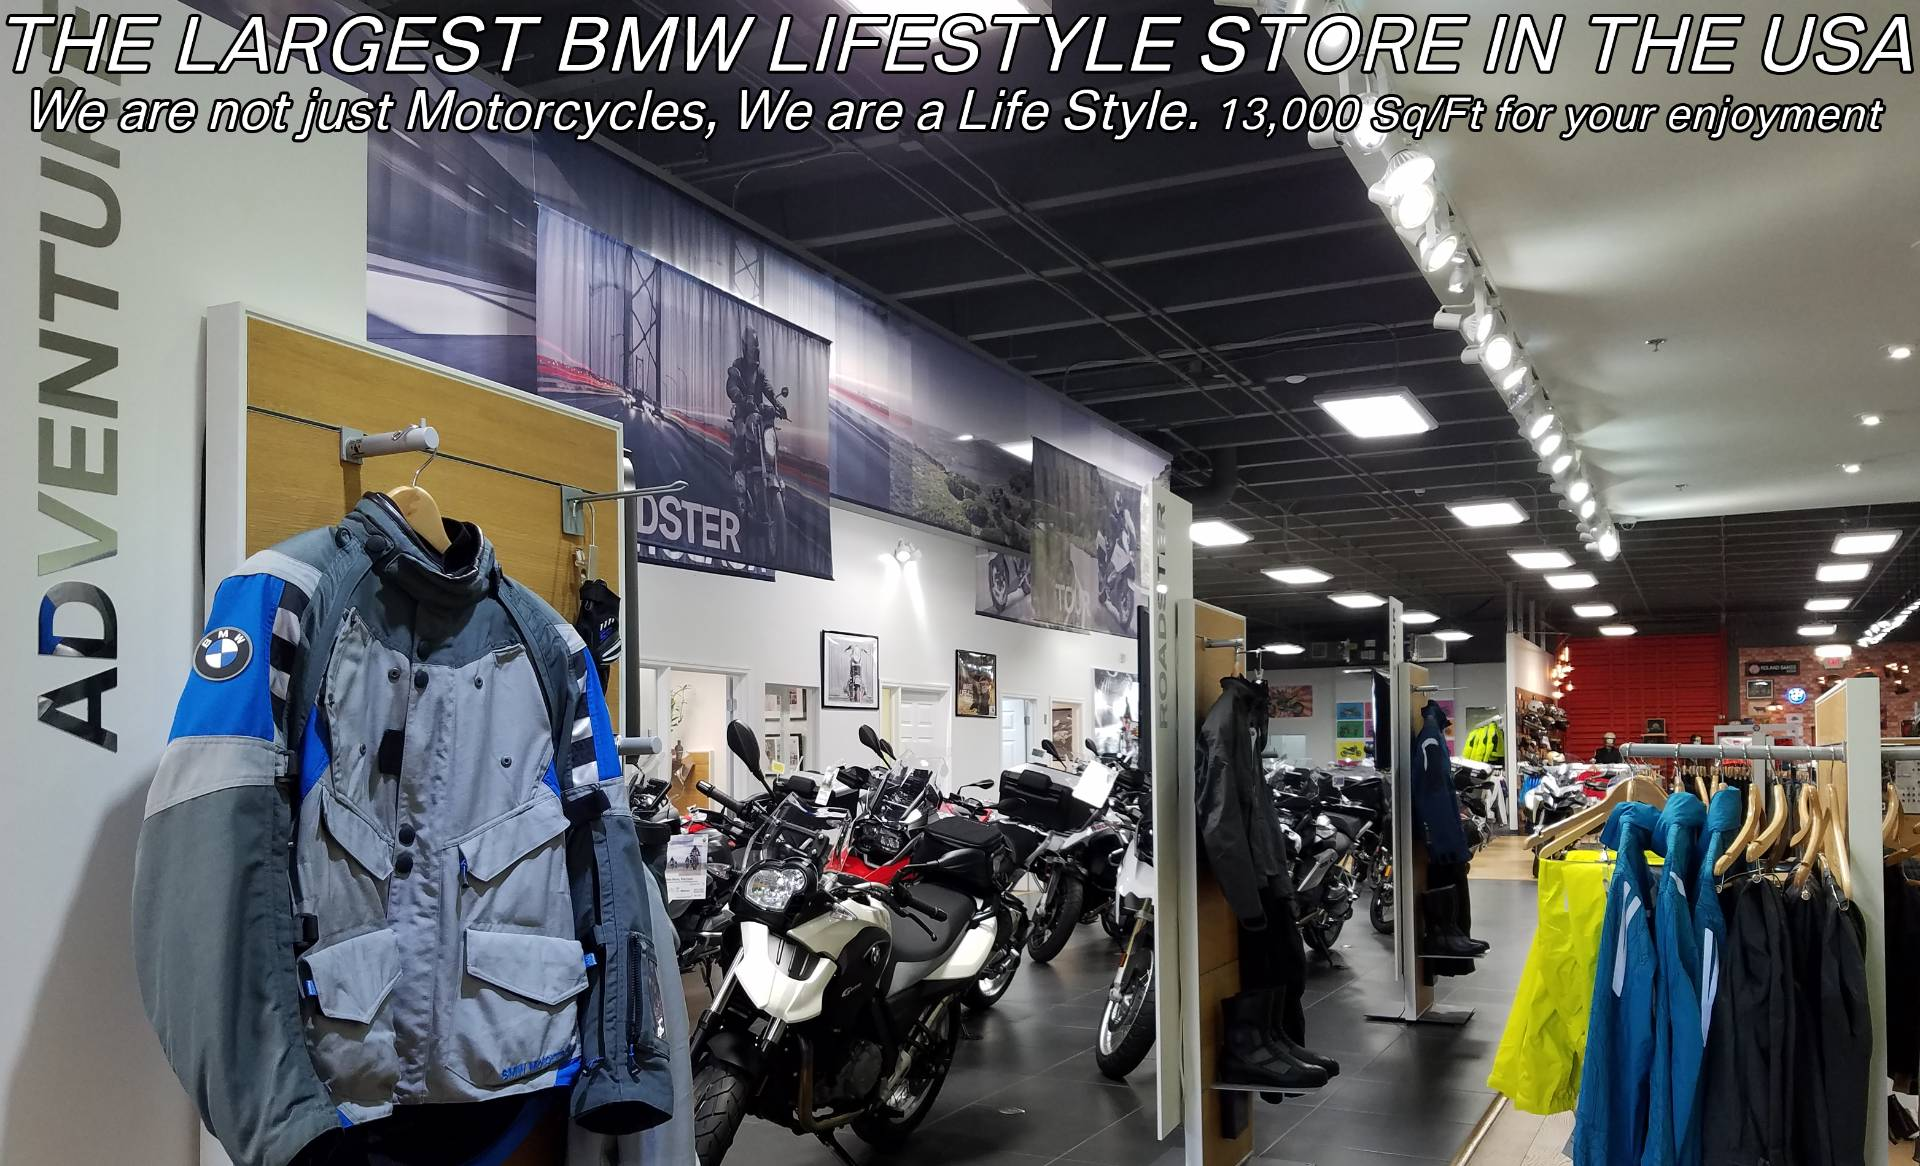 BMW Motorcycles of Miami, Motorcycles of Miami, Motorcycles Miami, New Motorcycles, Used Motorcycles, pre-owned. #BMWMotorcyclesOfMiami #MotorcyclesOfMiami. - Photo 37